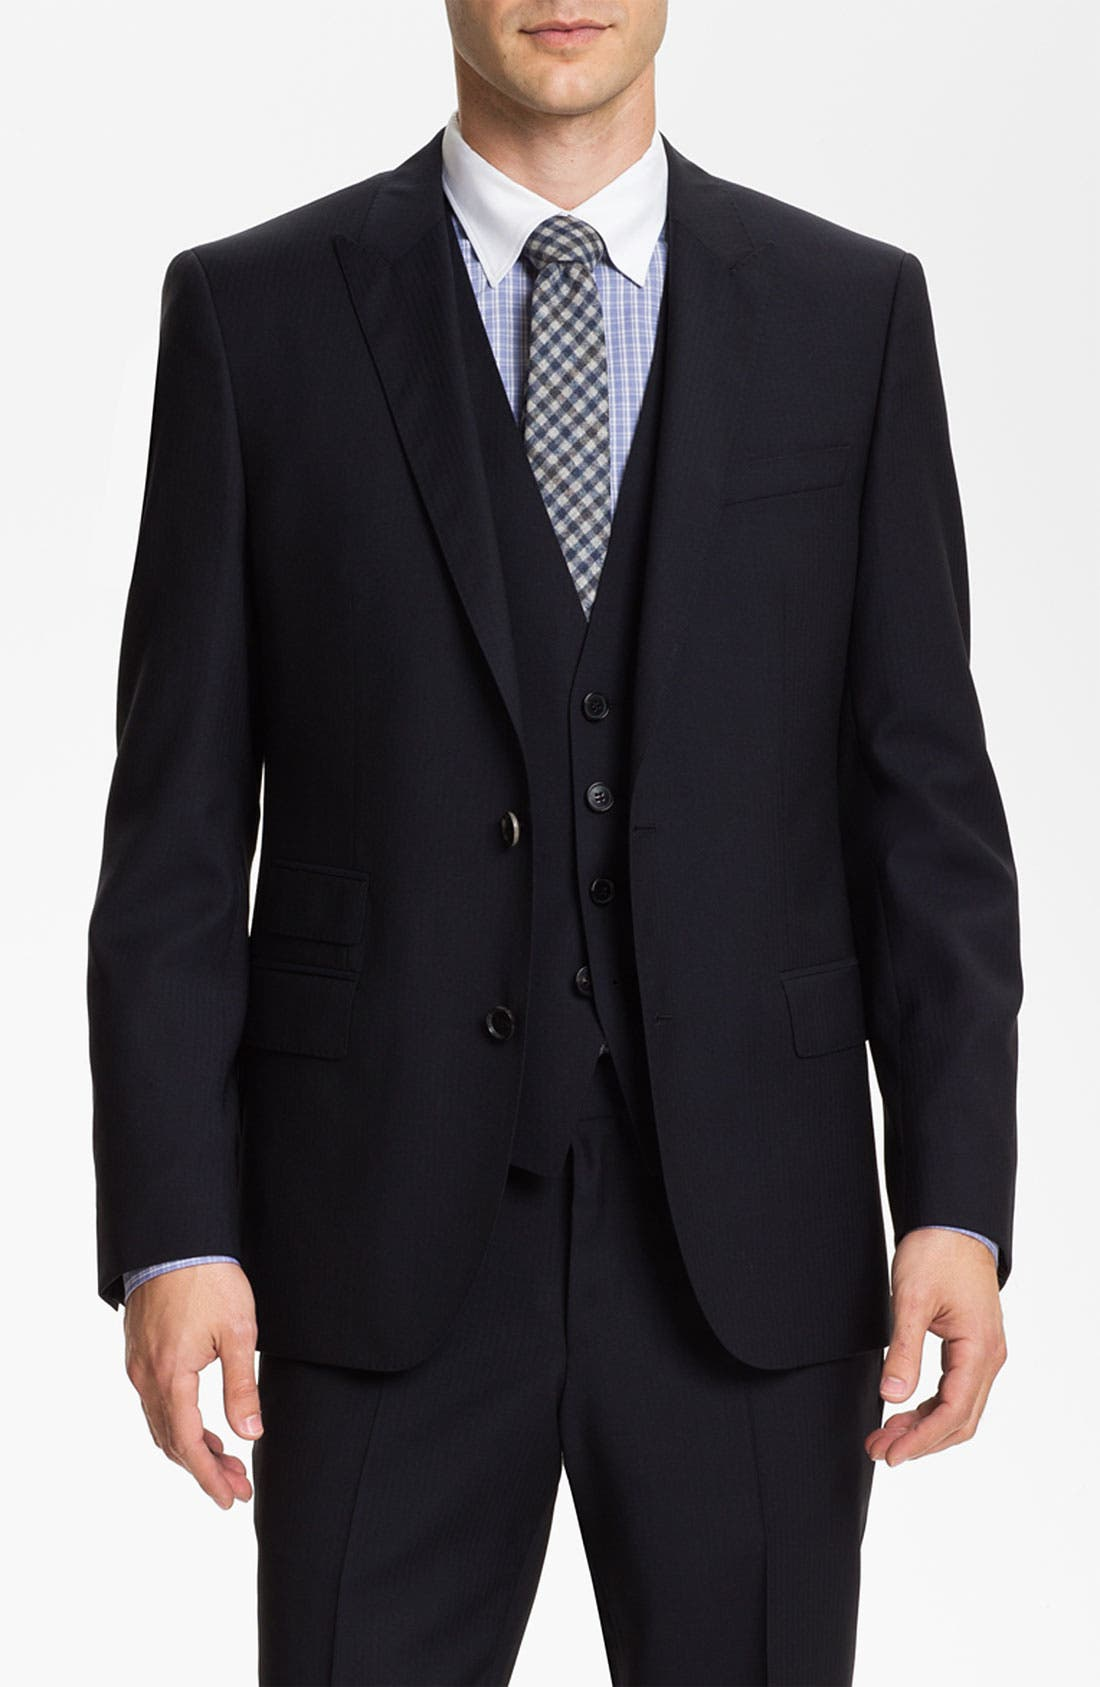 Alternate Image 1 Selected - BOSS Black 'Hold/Genius' Trim Fit Three Piece Suit